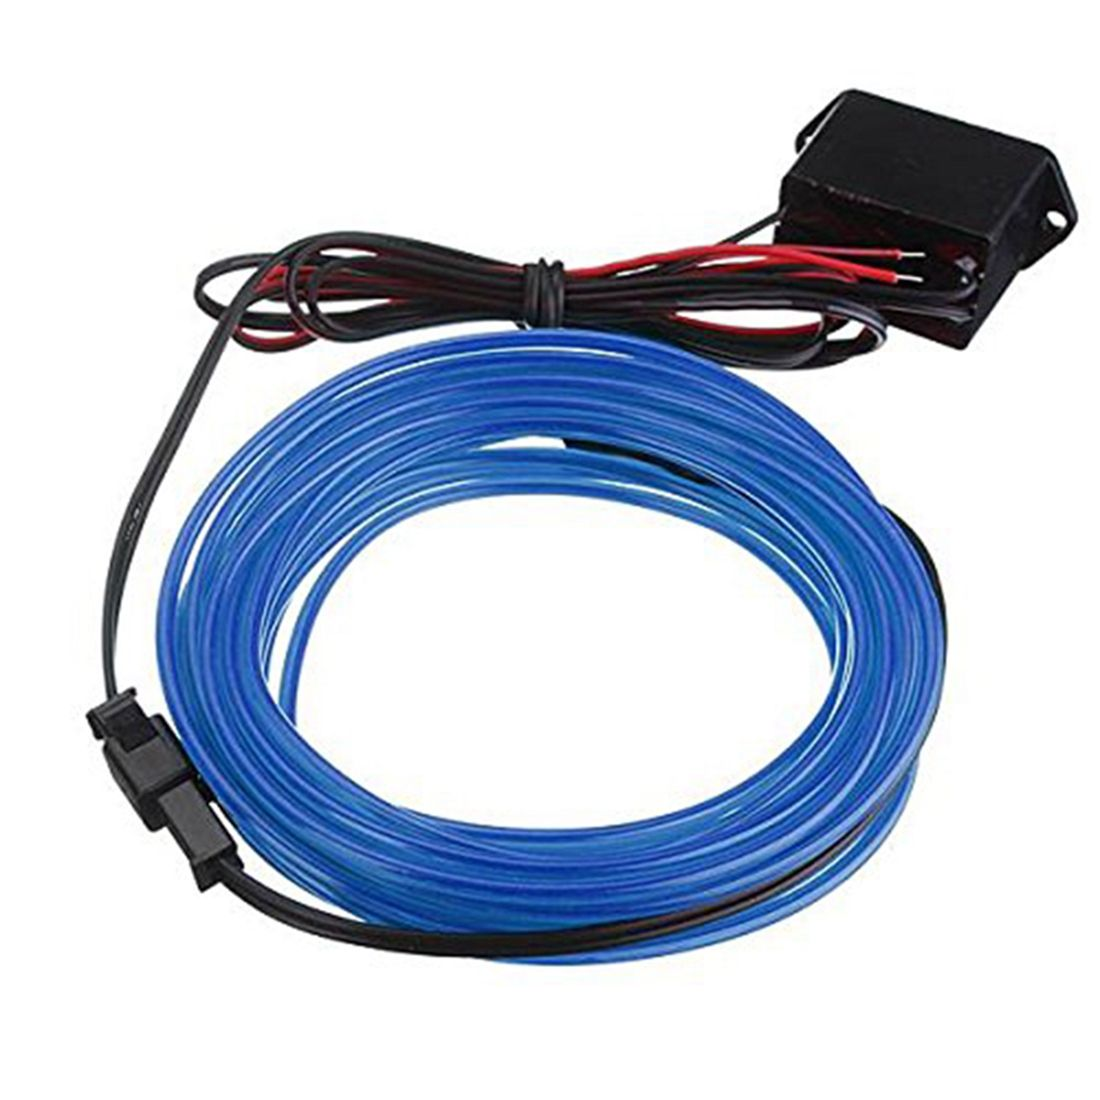 JFBL 5M EL Cable DC 12V Flexible Neon Lights for Christmas Parties ...